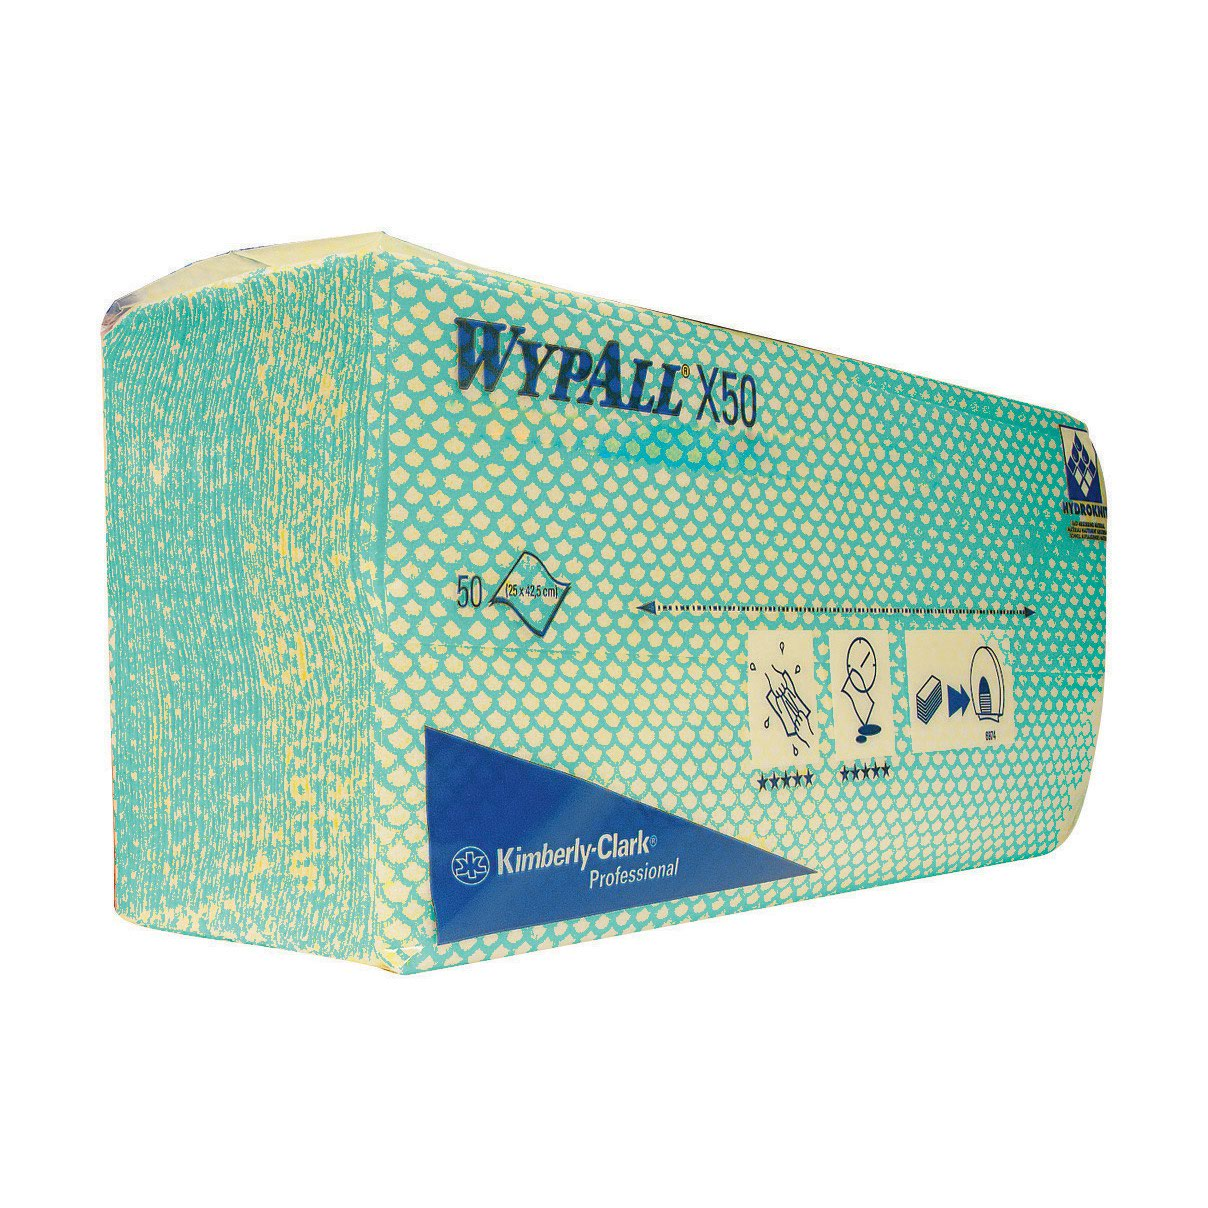 WYPALL X50 Microfibre Cleaning Cloths Green (50) 7442